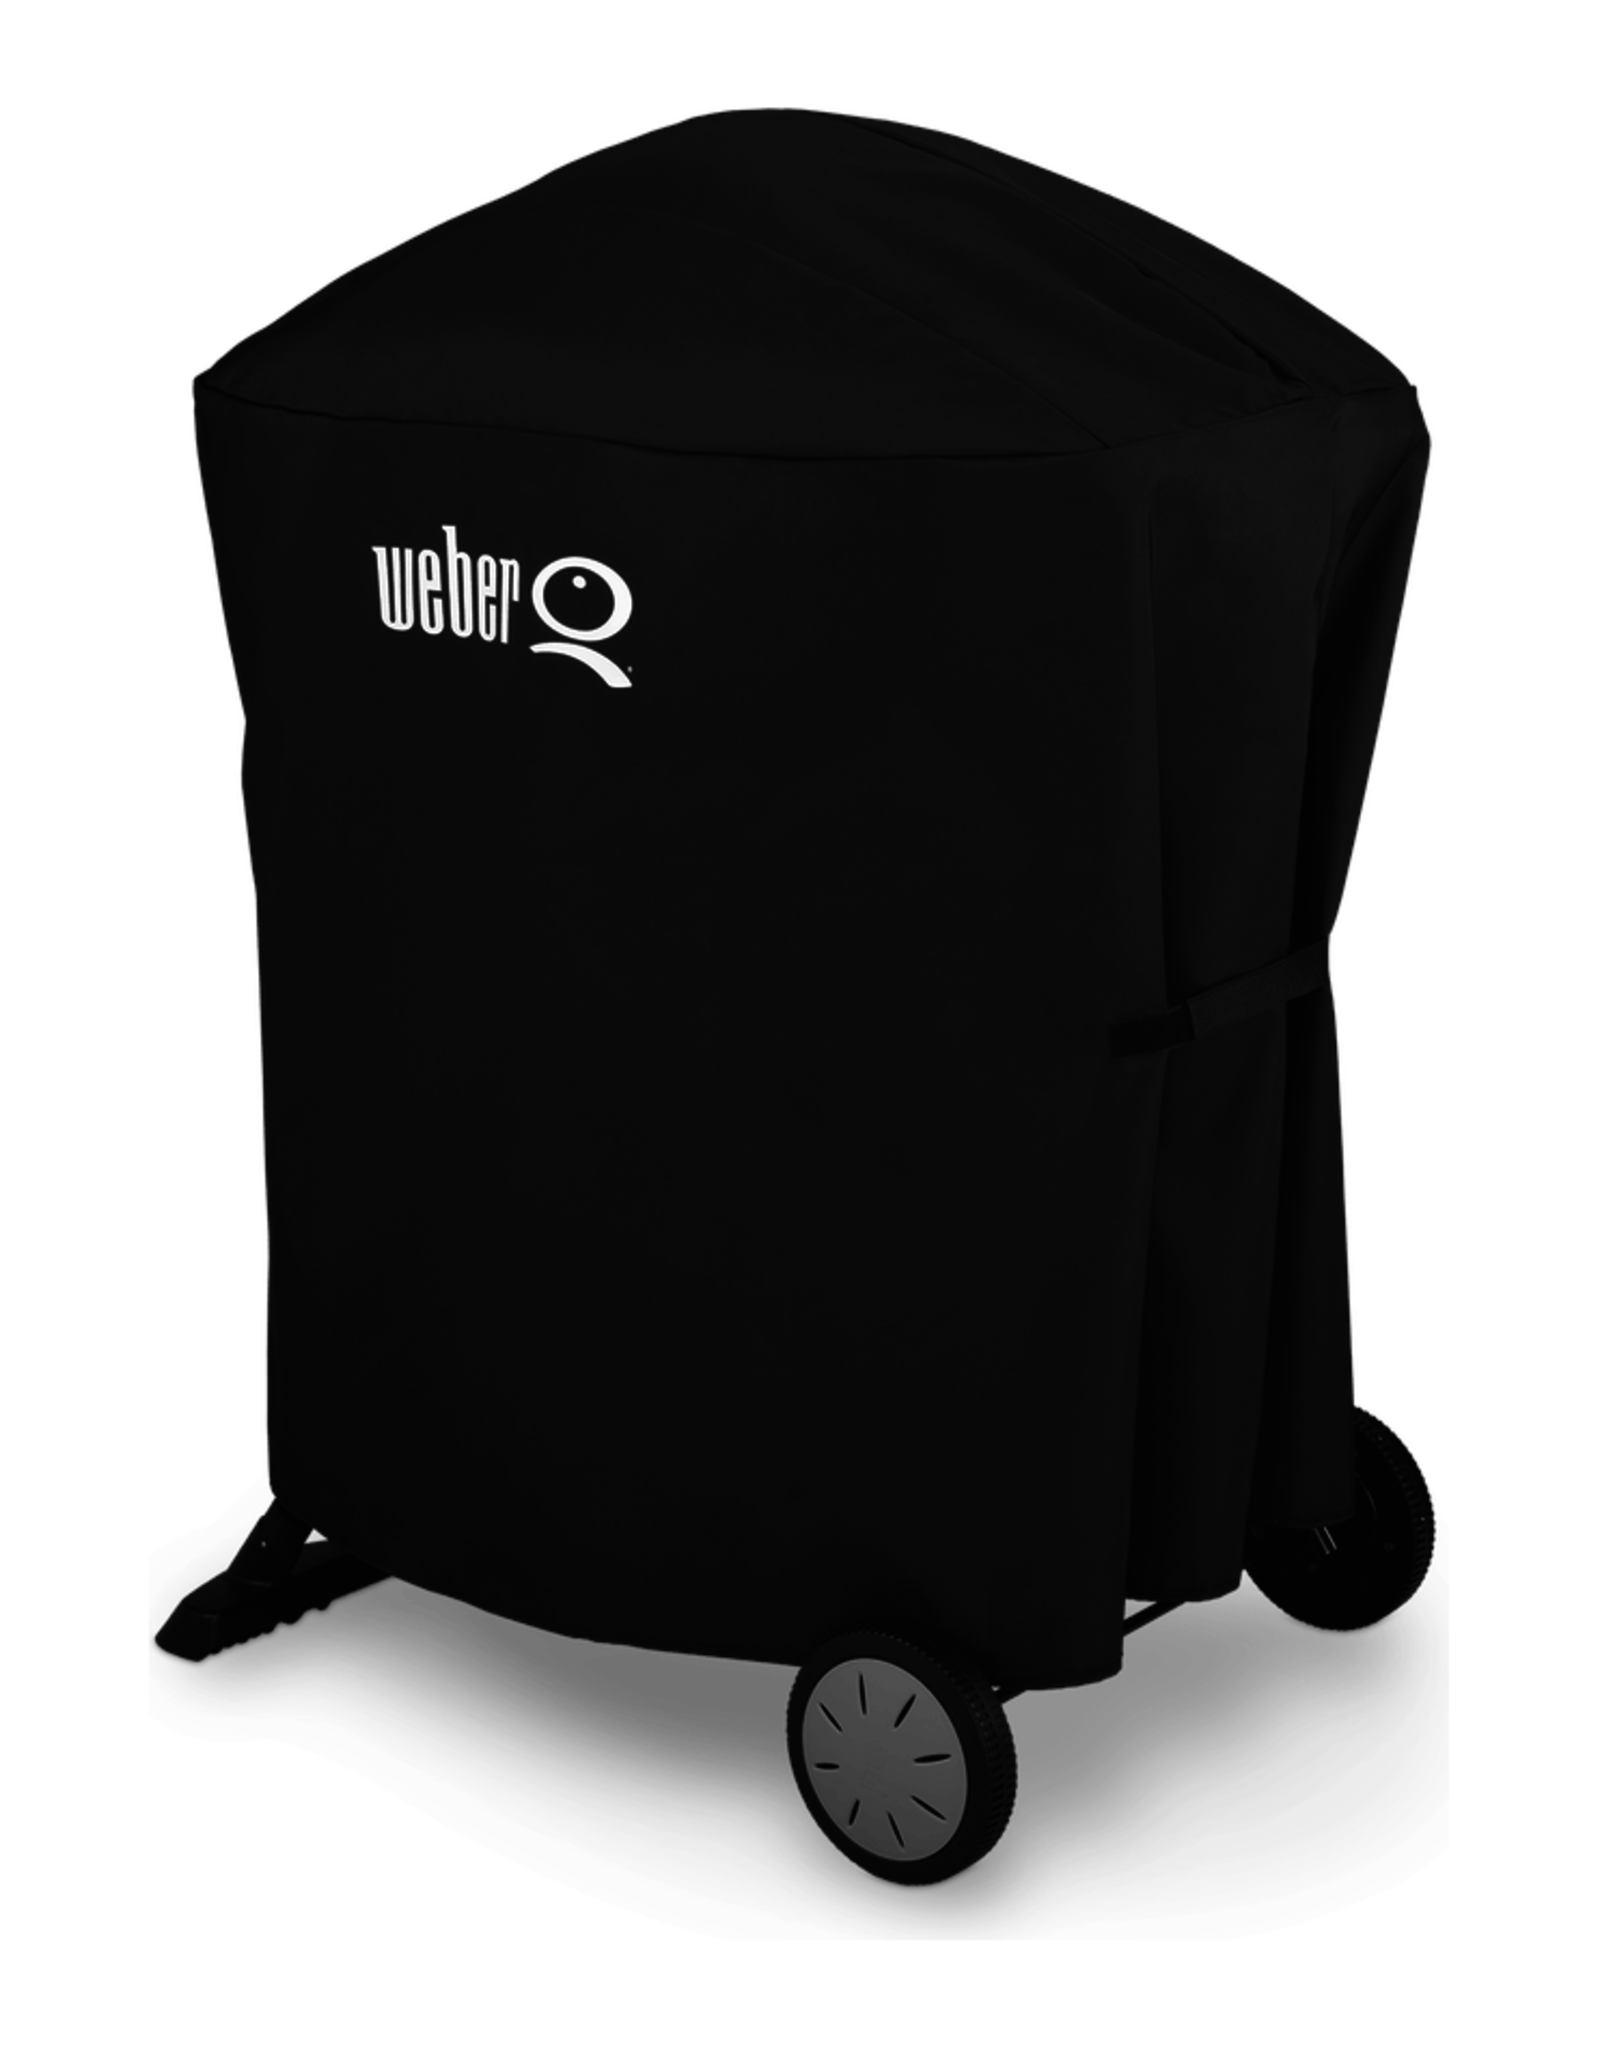 Weber Premium Grill Cover - Fits Weber Q 100/1000, 200/2000 with portable cart